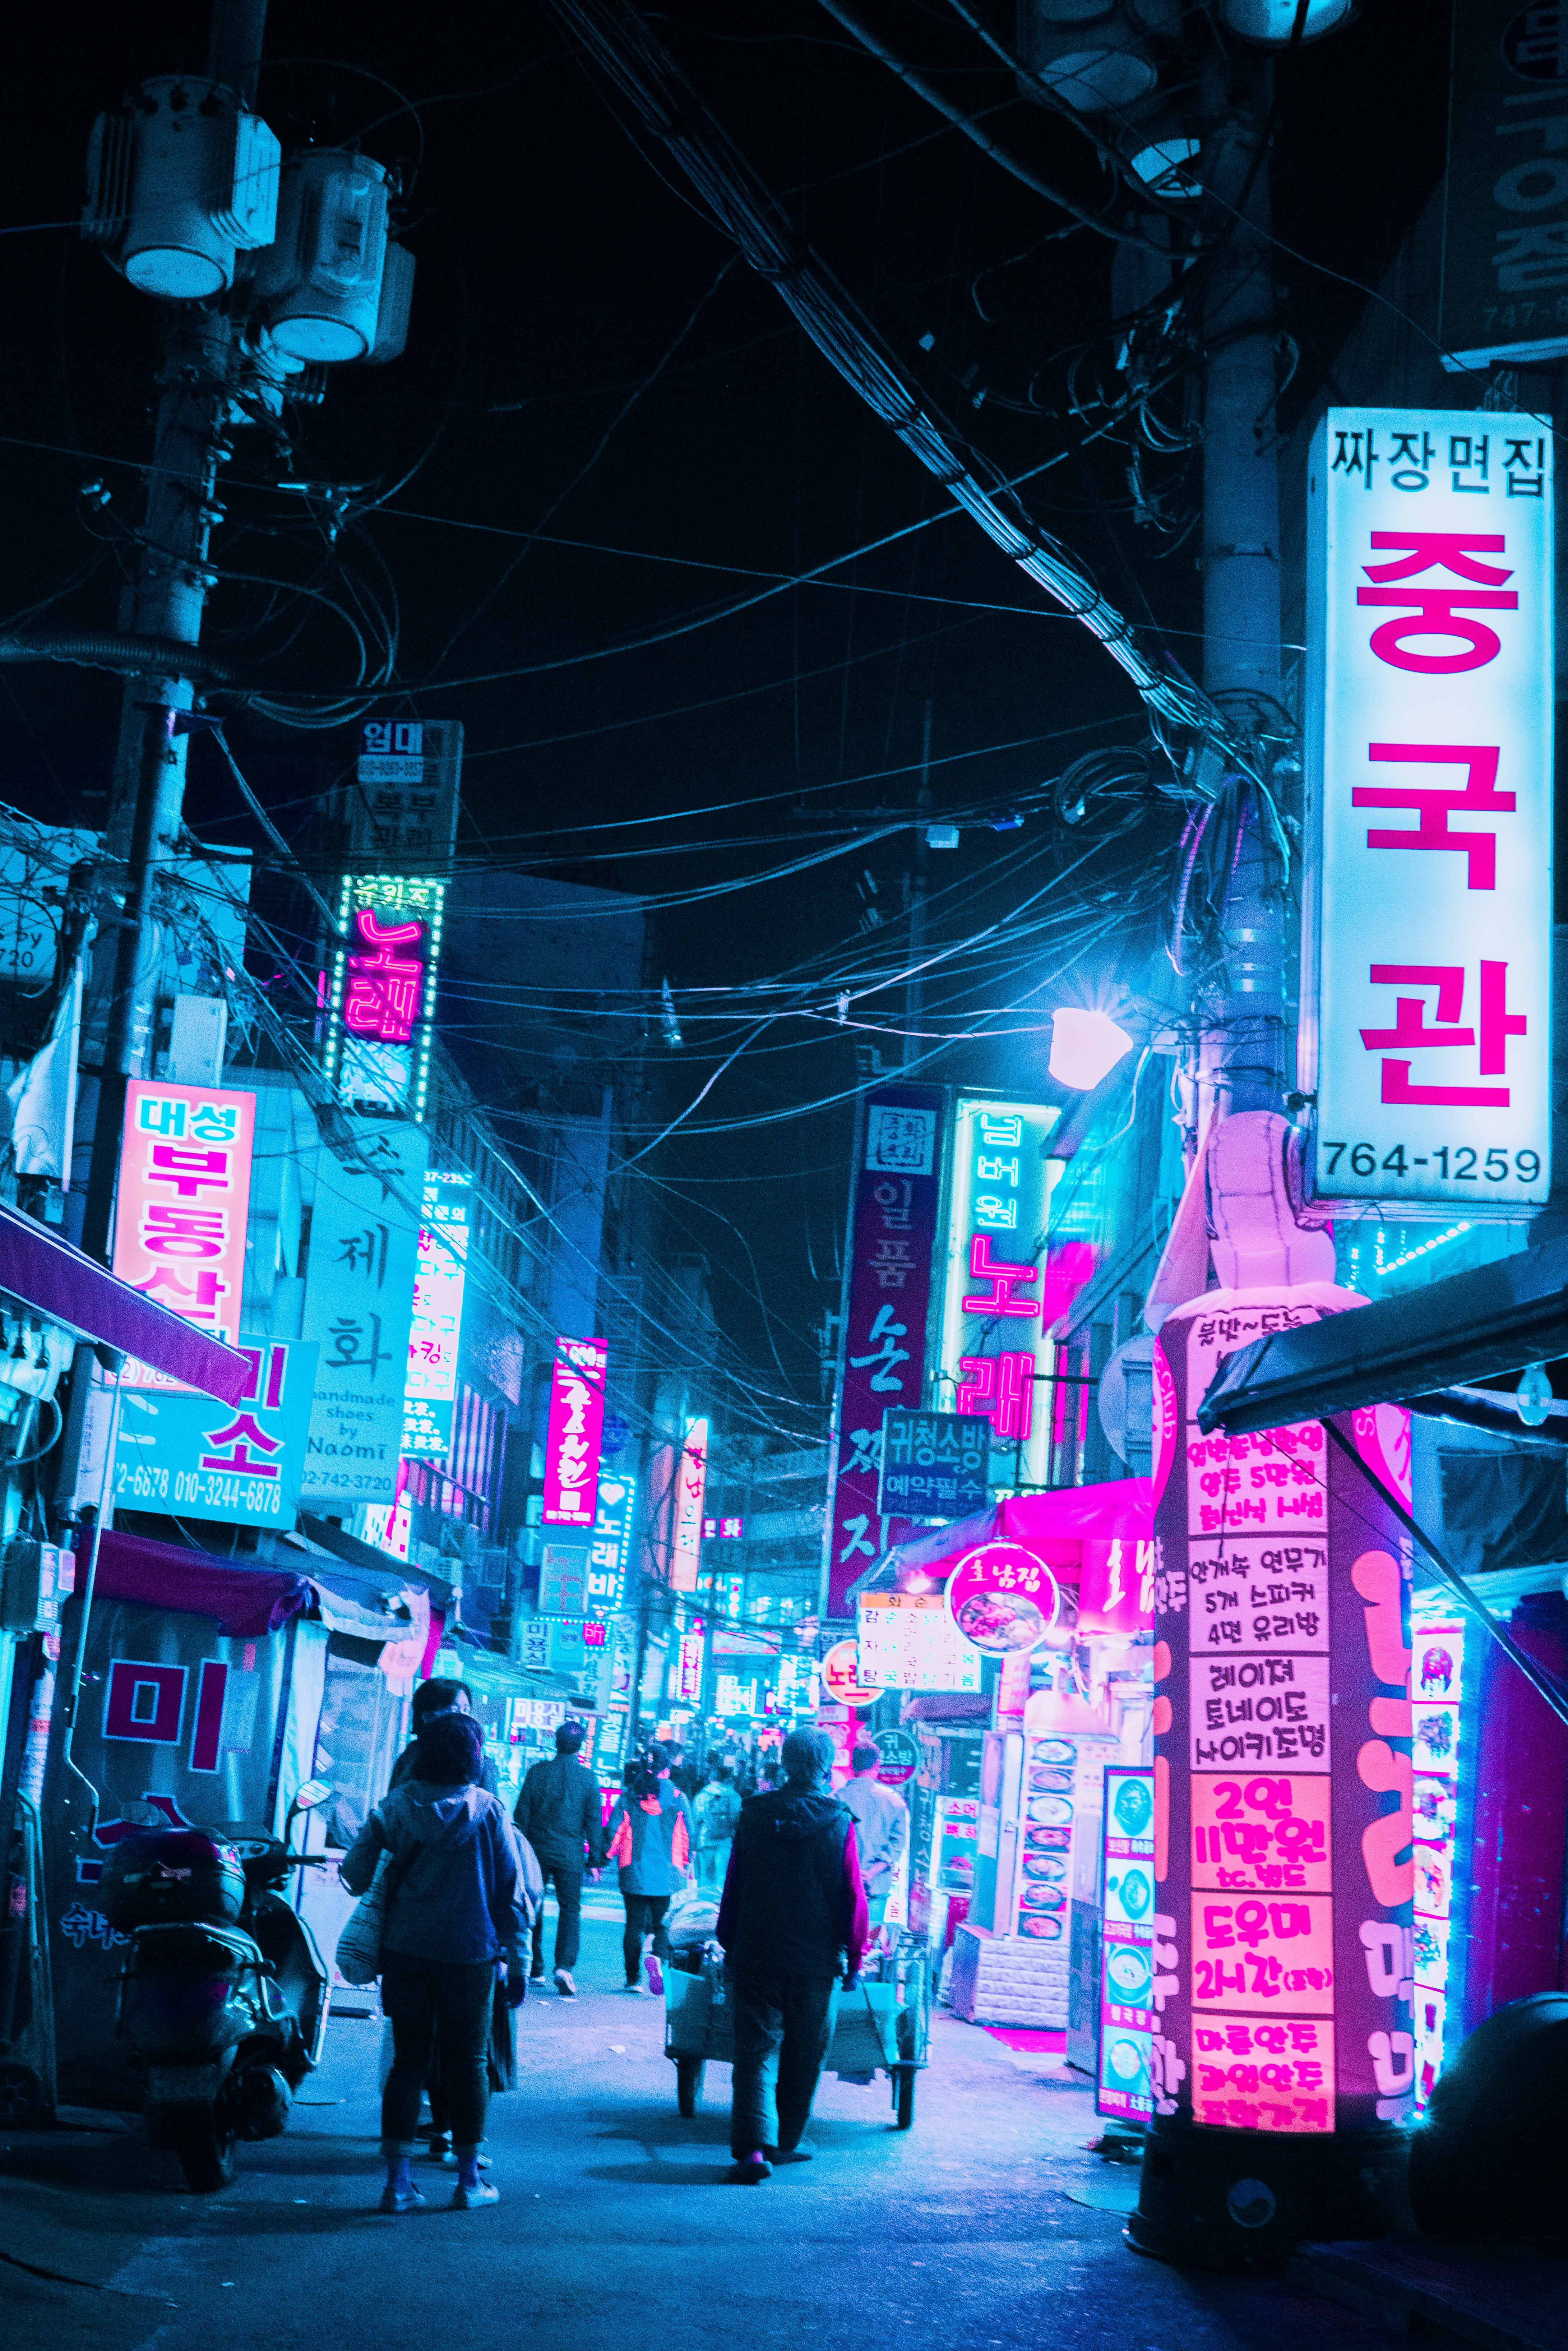 view of night market in a Japanese alley